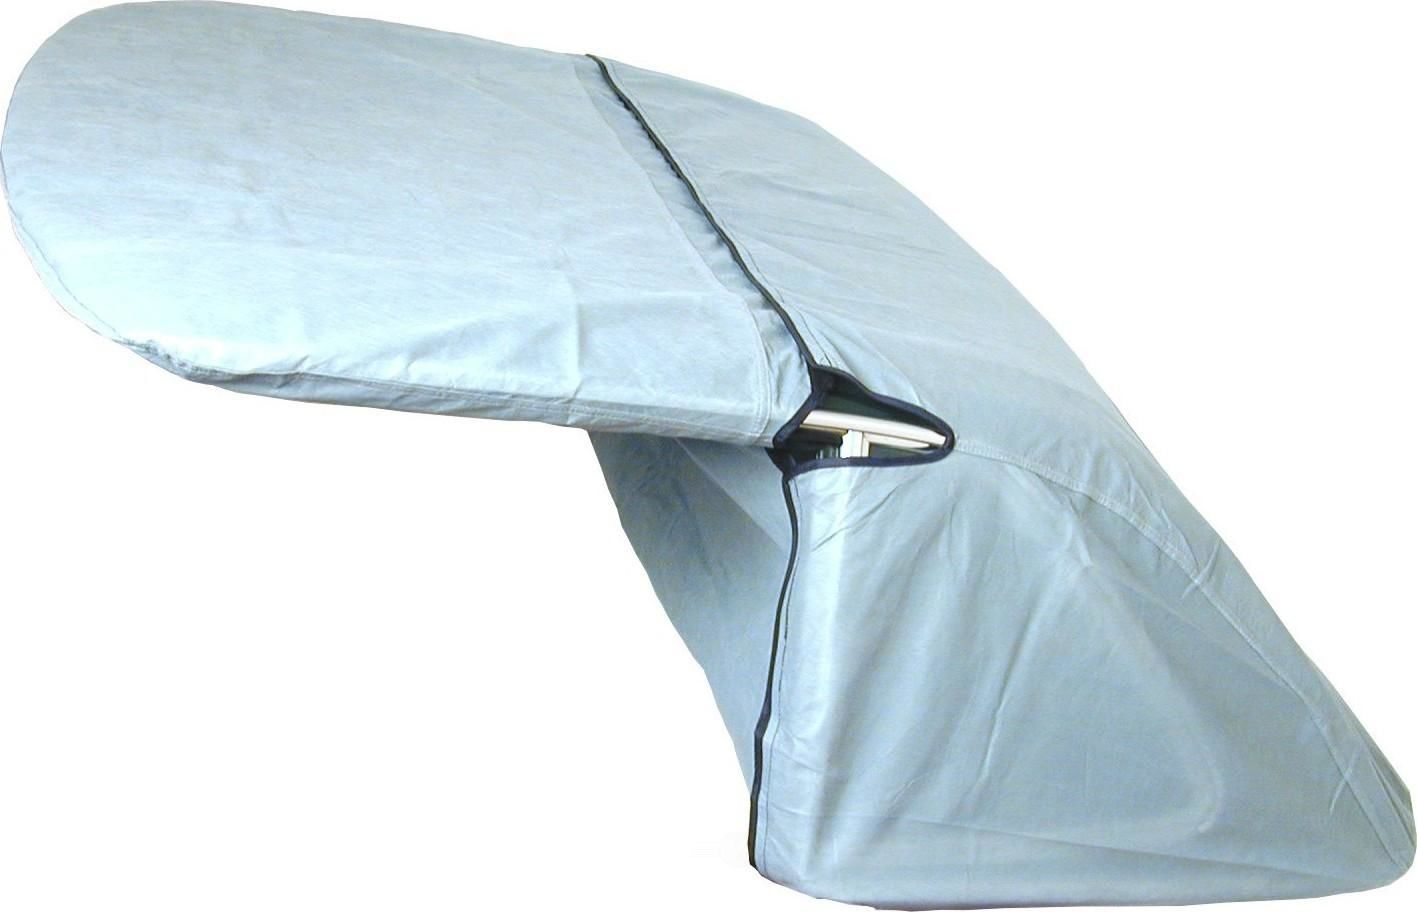 URO PARTS - Hard Top Cover (for Hoist) - URO TH-COVER